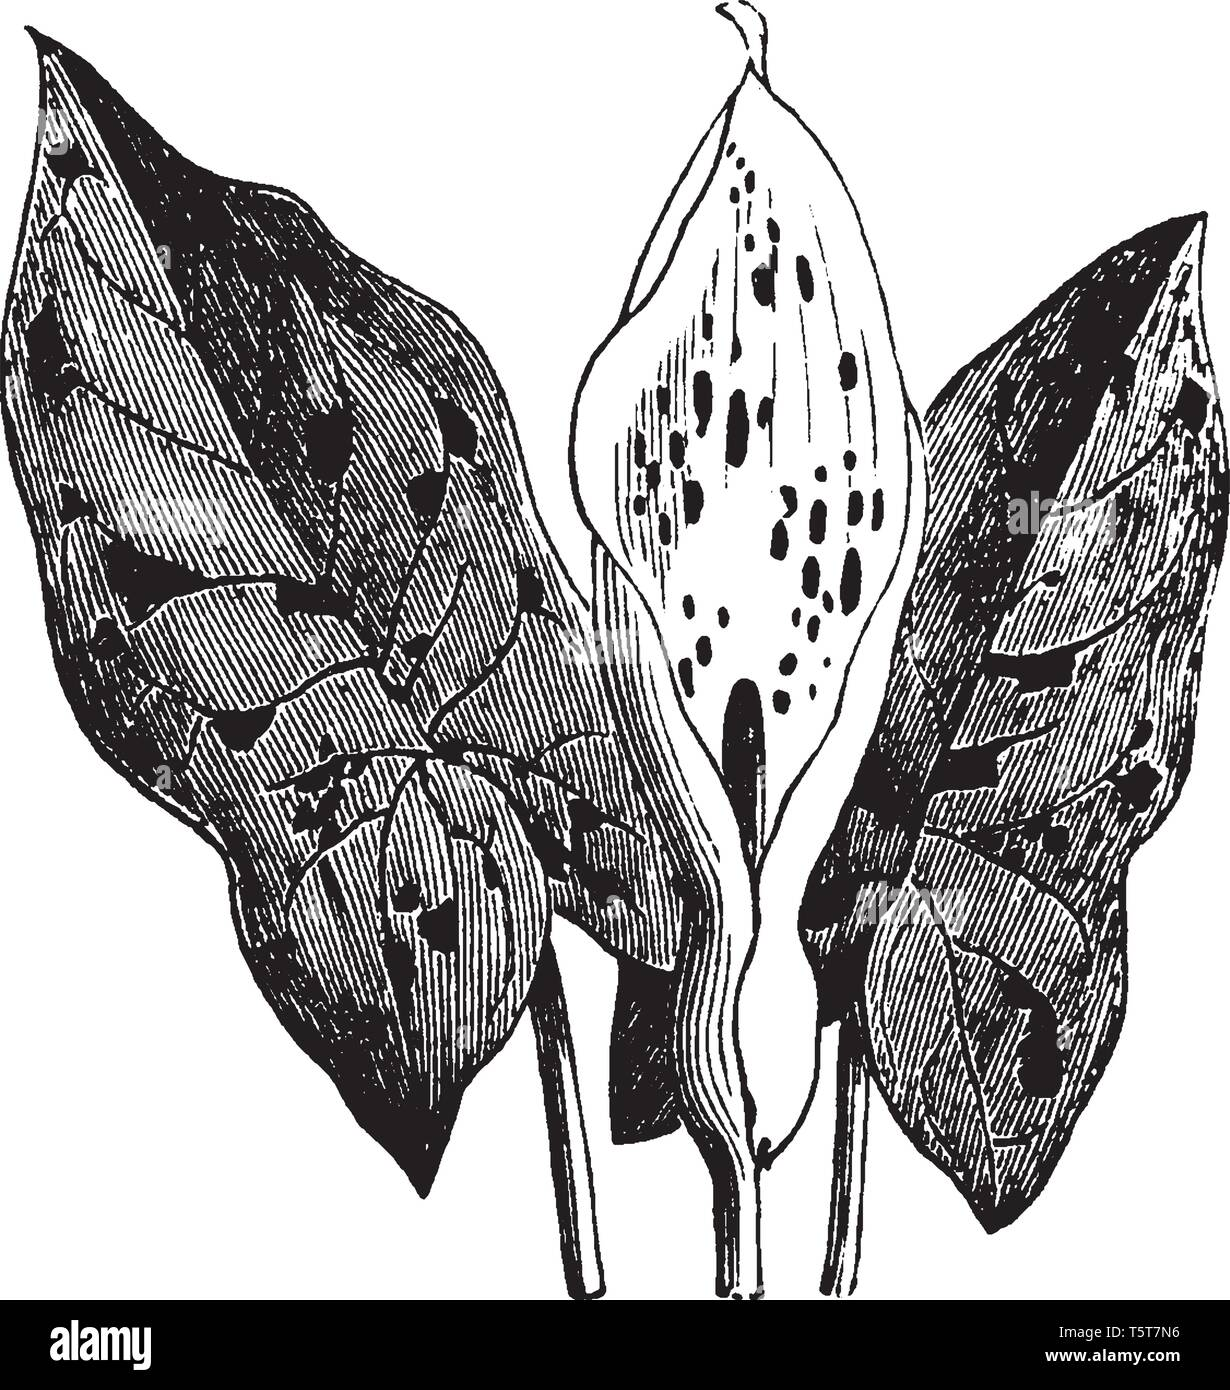 Wake-Robin also known as Arum maculatum is a perennial plant about 45cm long arrow-head shaped green leaves. It is found mainly in Europe, vintage lin - Stock Vector